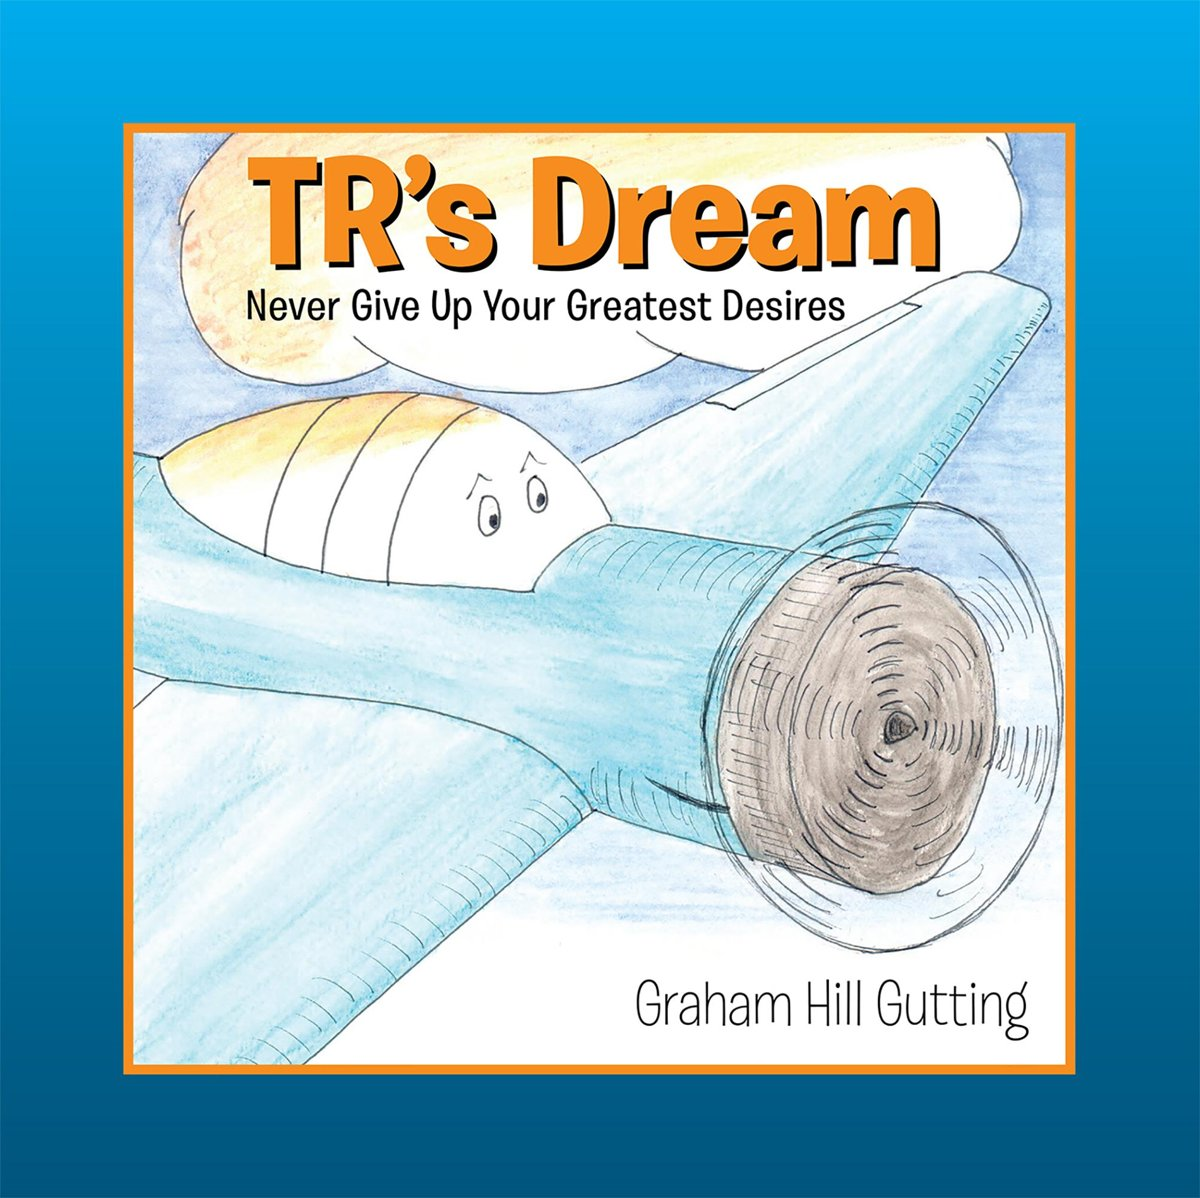 TR's Dream: Never Give Up Your Greatest Desires